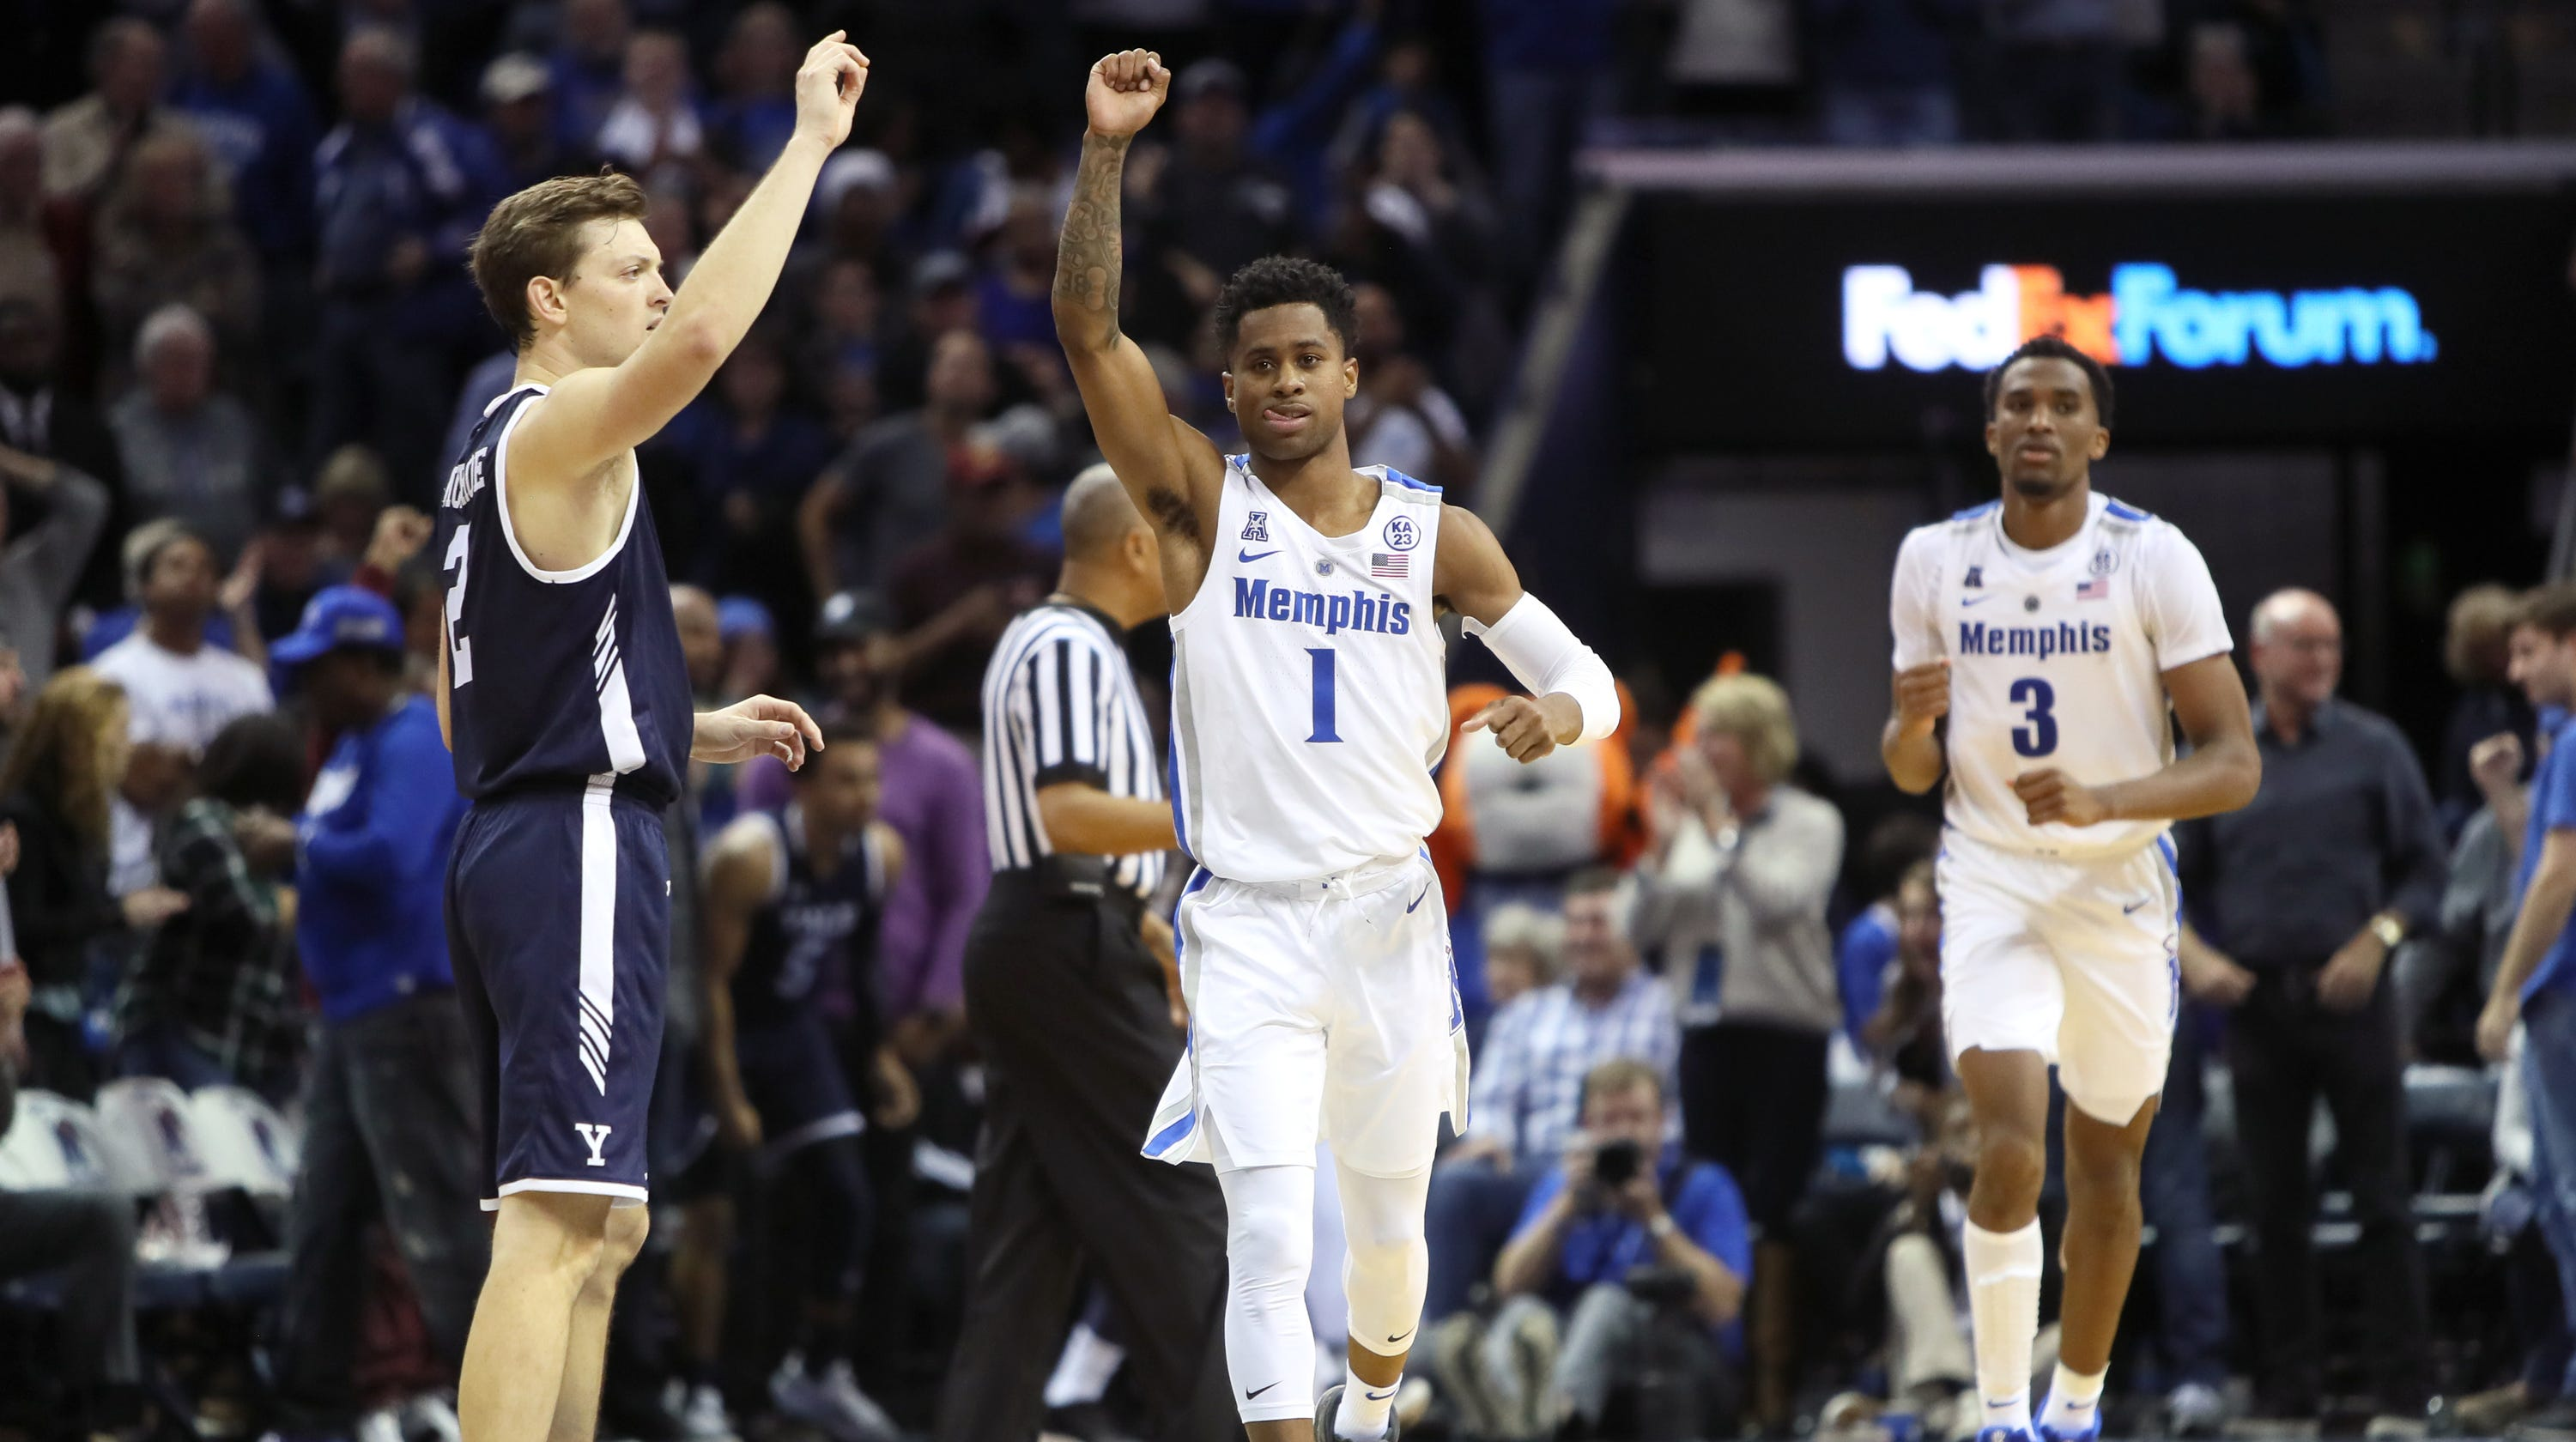 memphis, tyler harris has prayer answered in thrilling win over yale